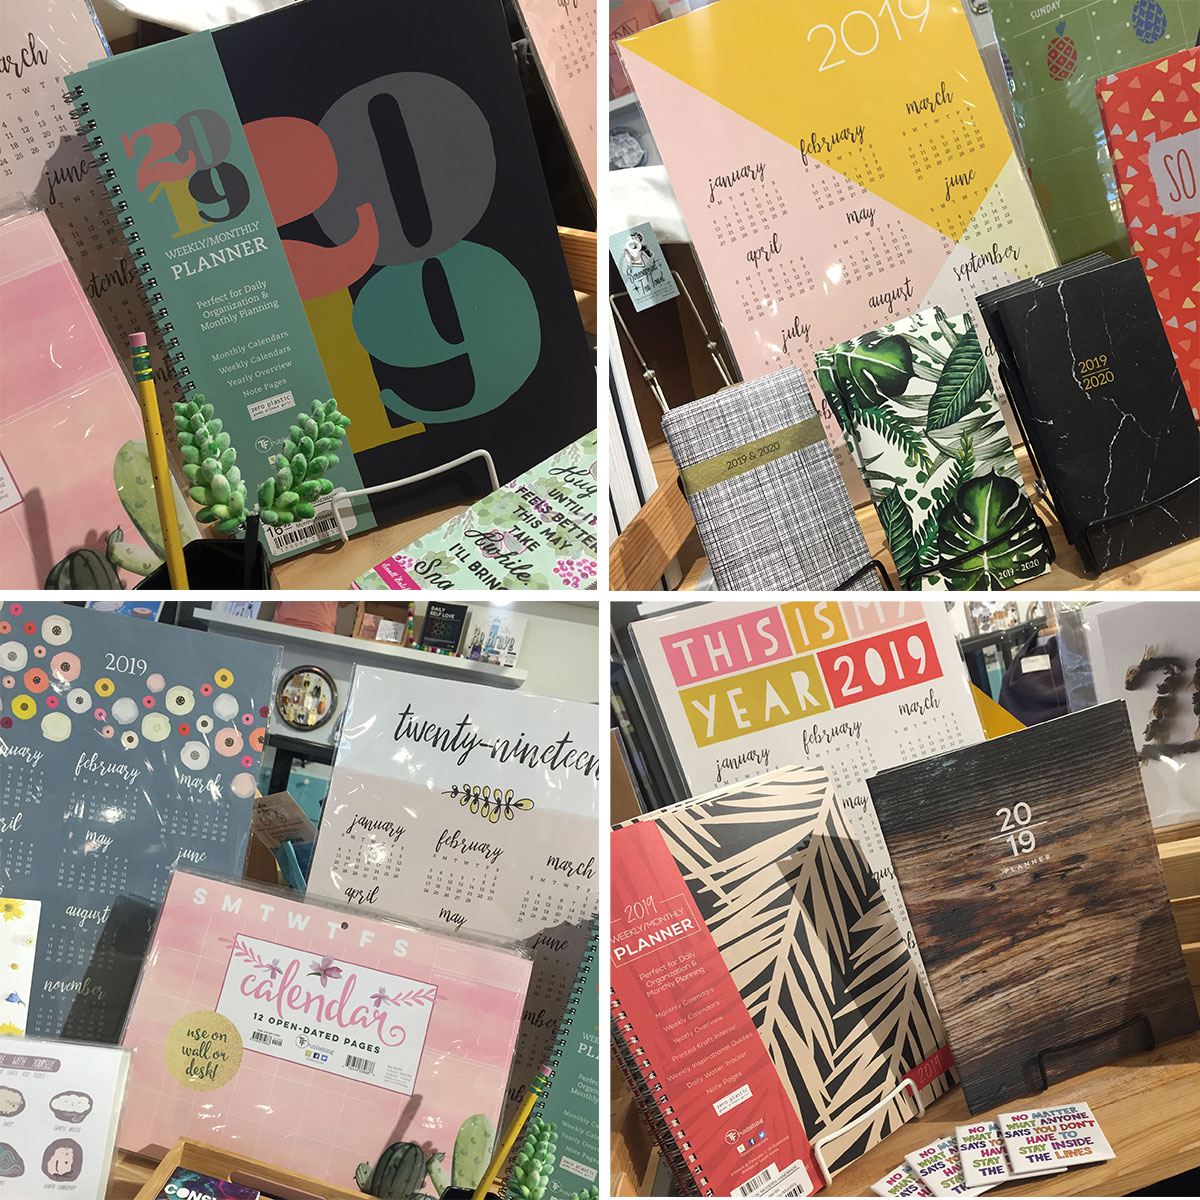 ICYMI January 11 2019 wall calendars and planners 20% off at Homespun: Modern Handmade